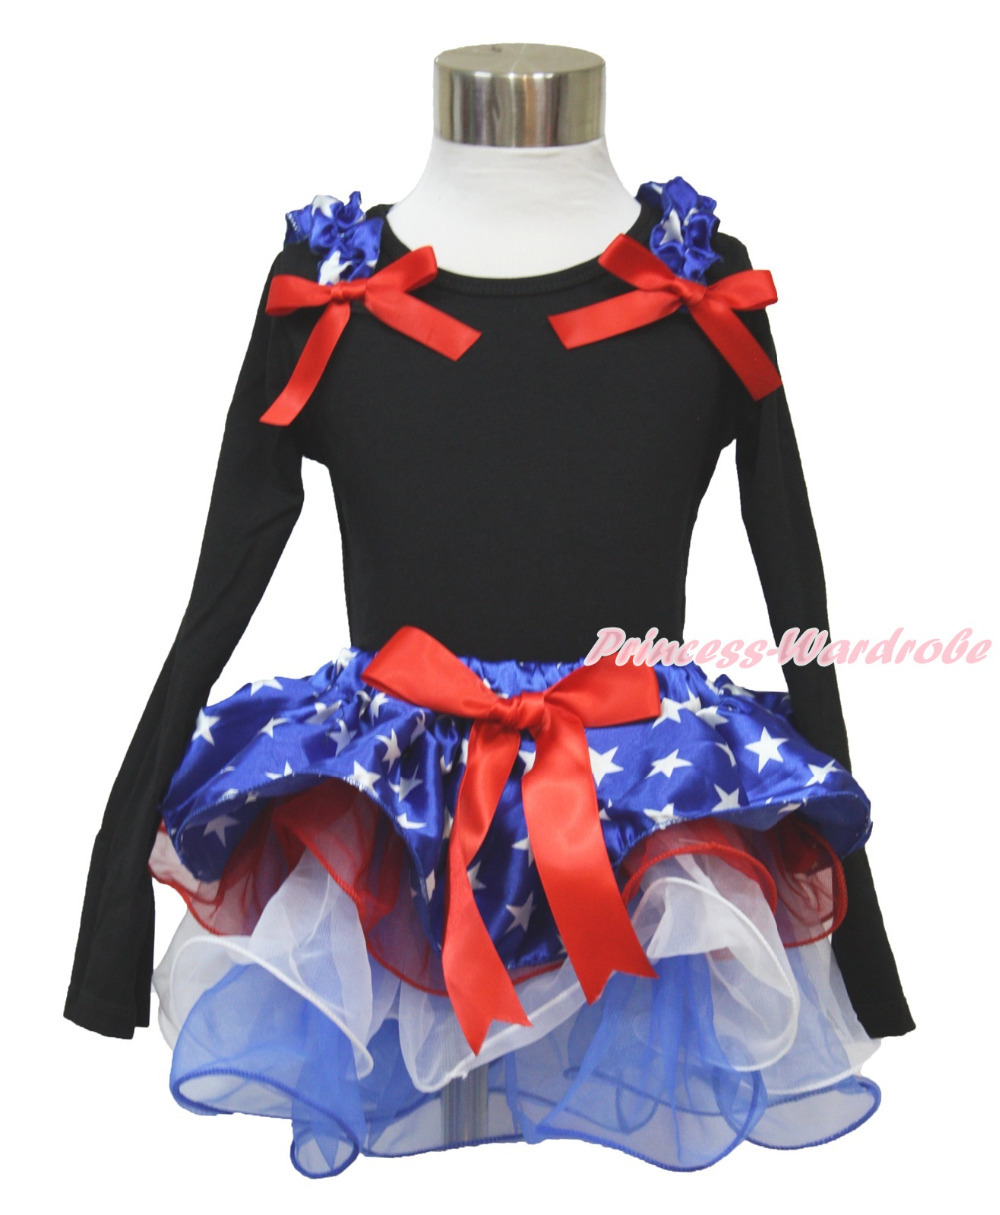 4th July Ruffle Bow Black Long Sleeves Top Patriotic Star Red White Petal Pettiskirt NB-8Year MAMH228 red black 8 layered pettiskirt red sparkle number ruffle red bow tank top mamg575